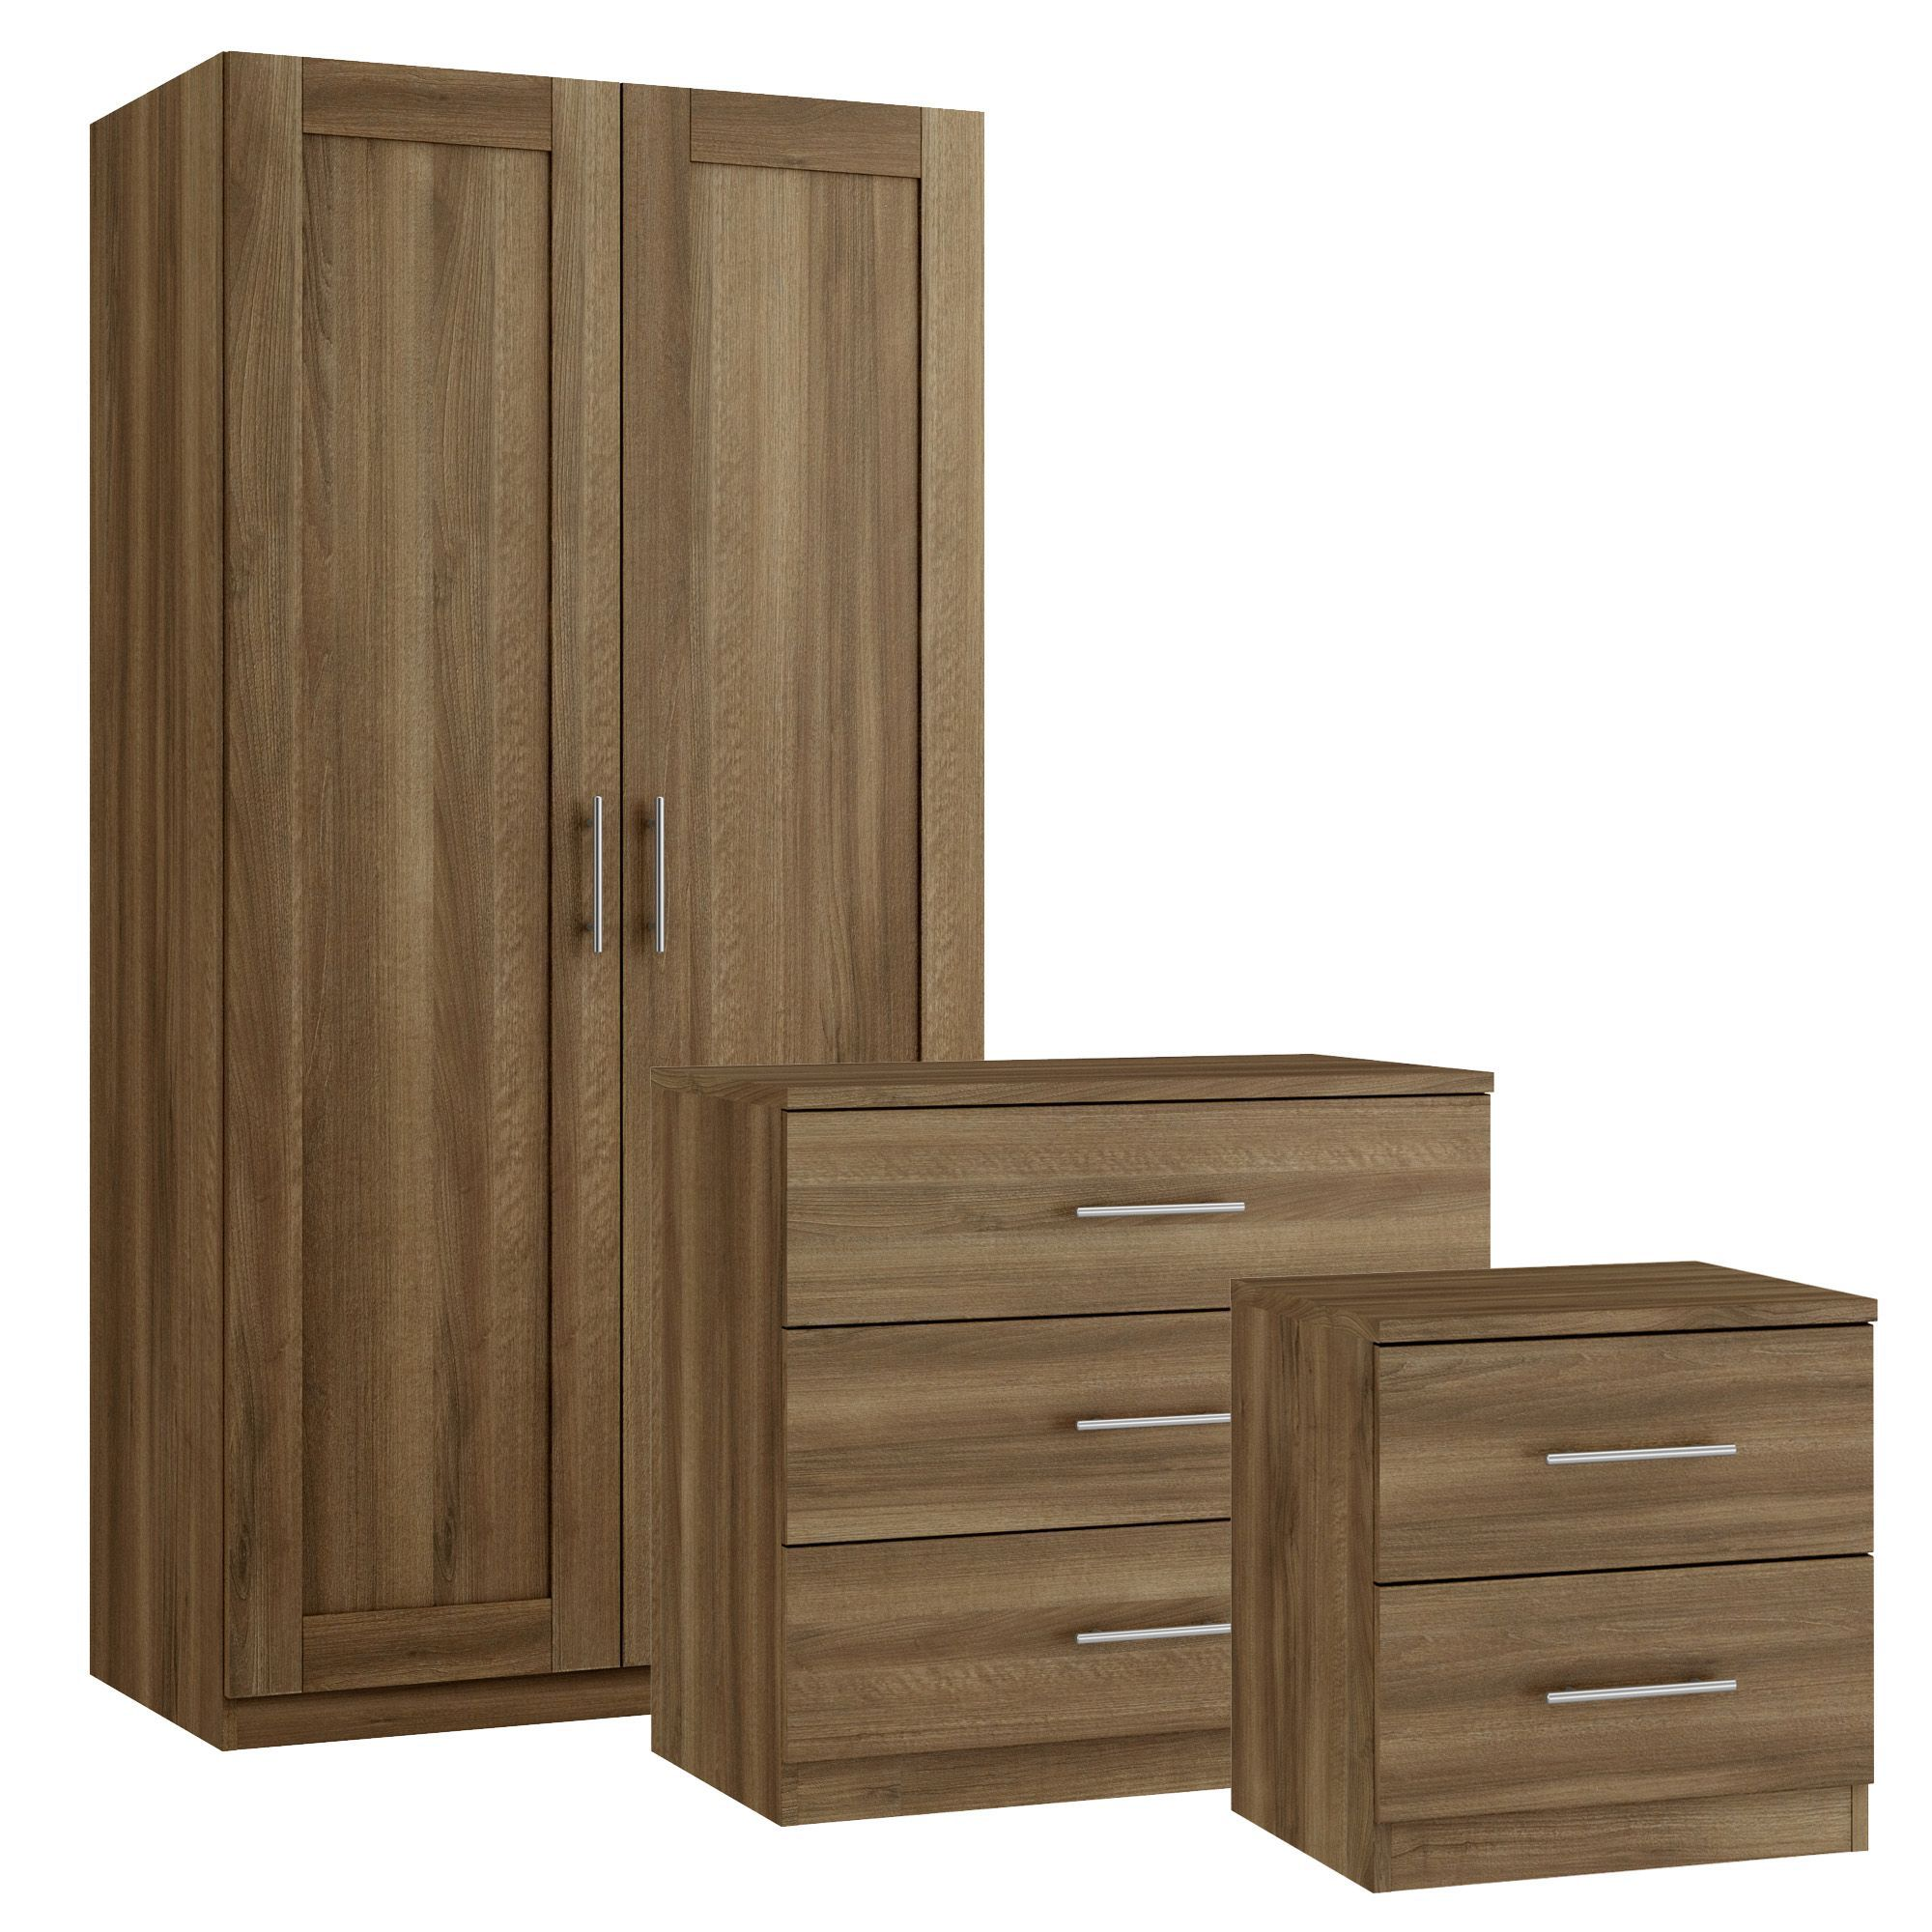 Darwin walnut effect 3 piece bedroom furniture set for B q bedroom furniture sets